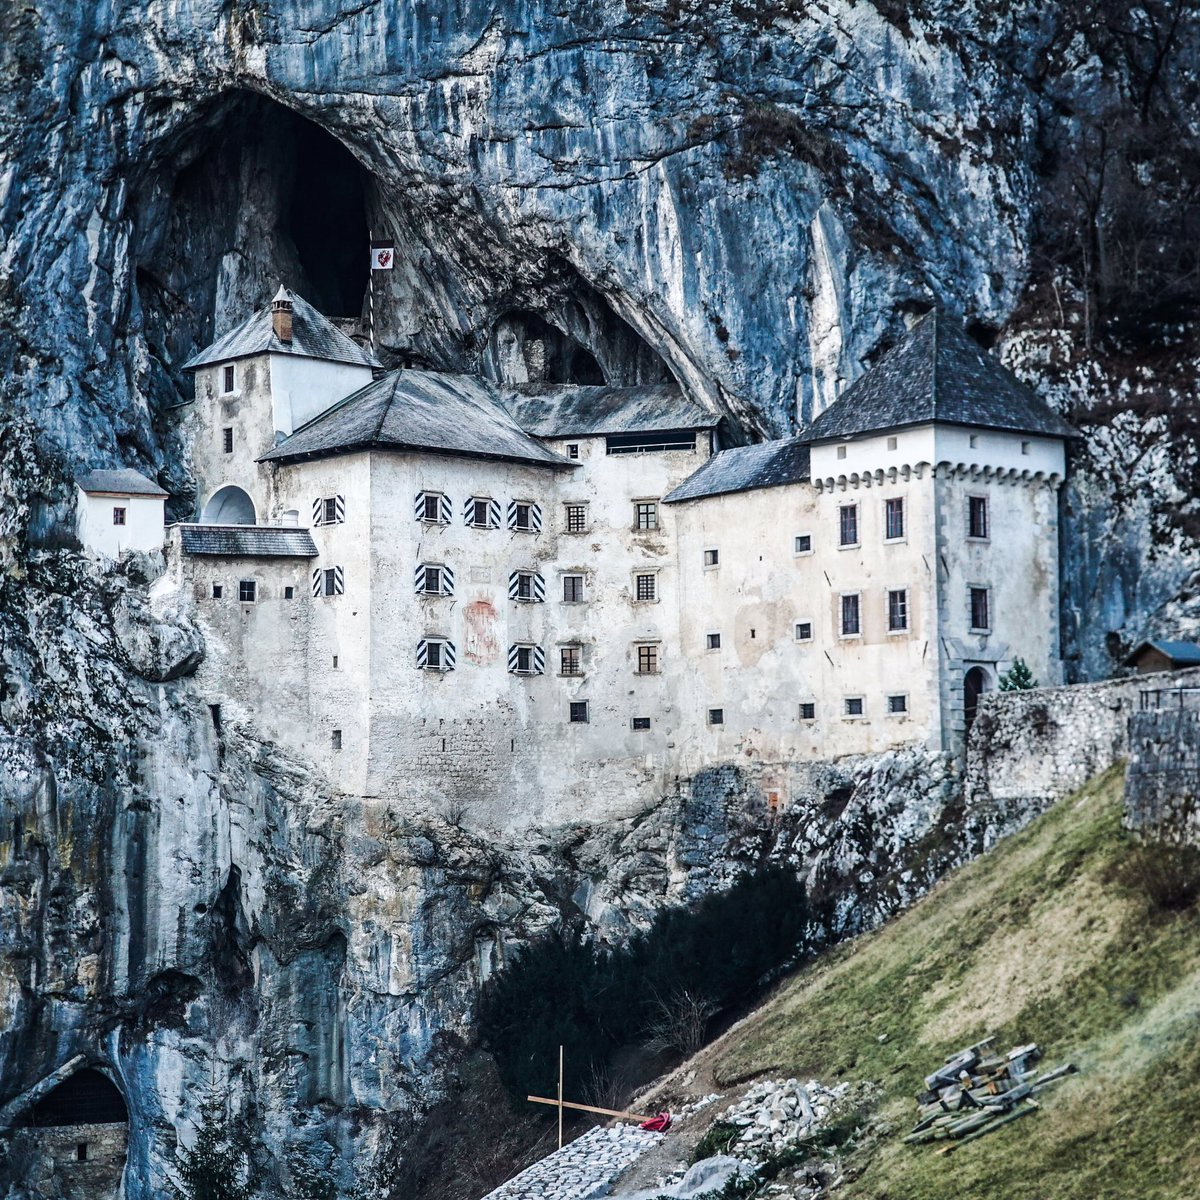 Louis Cole On Twitter This 900 Year Old Gothic Castle Is Built Into The Cliff Face And Conceals An Entrance To Underground Cave System